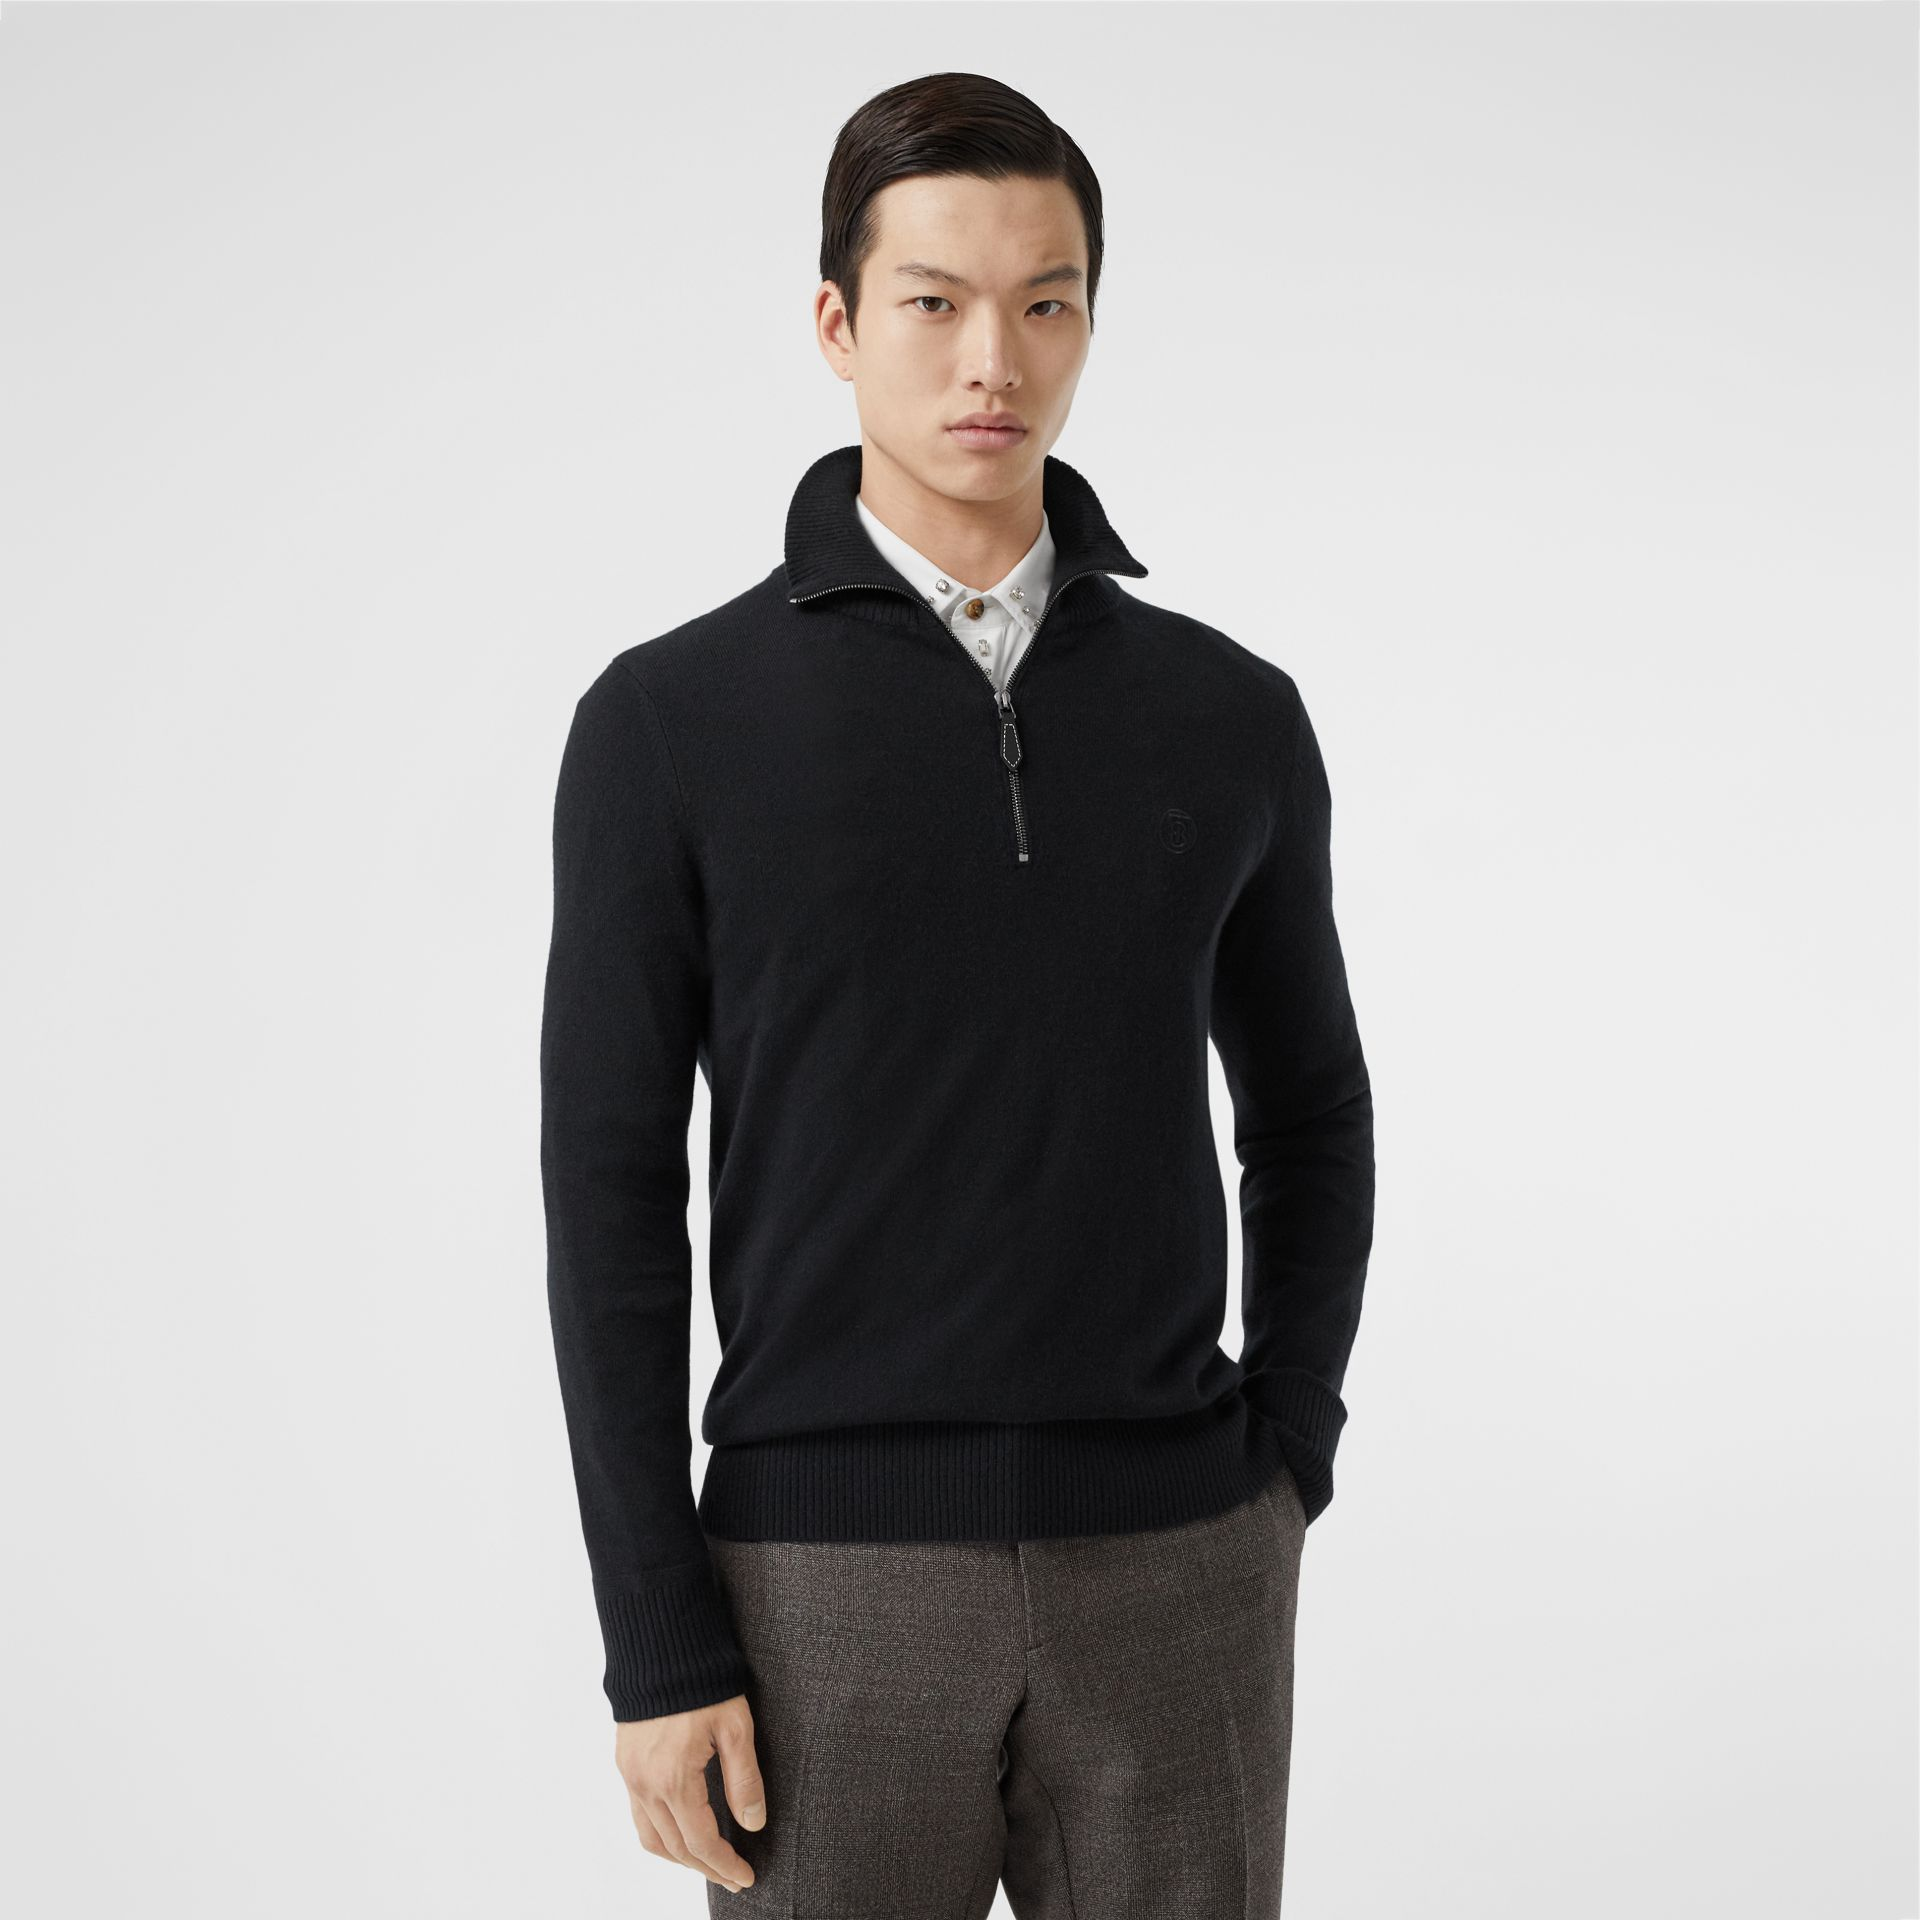 Monogram Motif Cashmere Funnel Neck Sweater in Black - Men | Burberry - gallery image 4